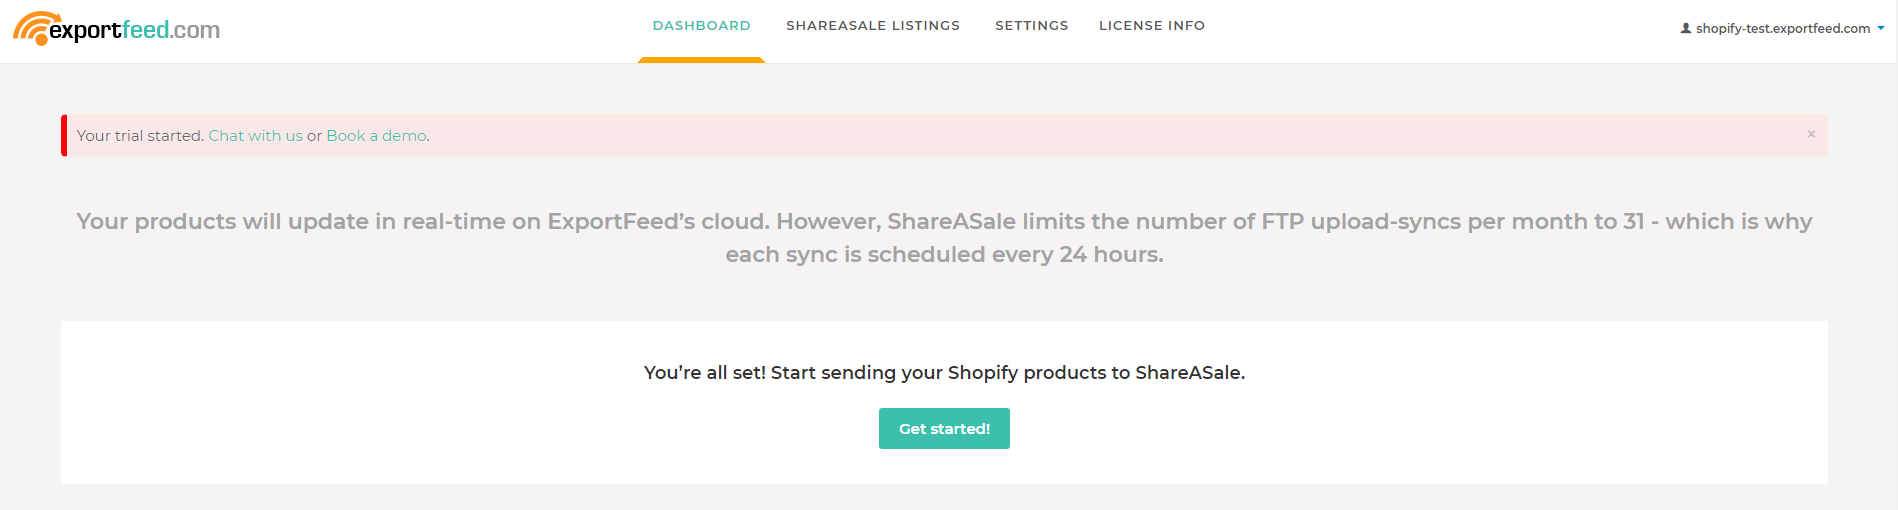 shop-overview-shareasale